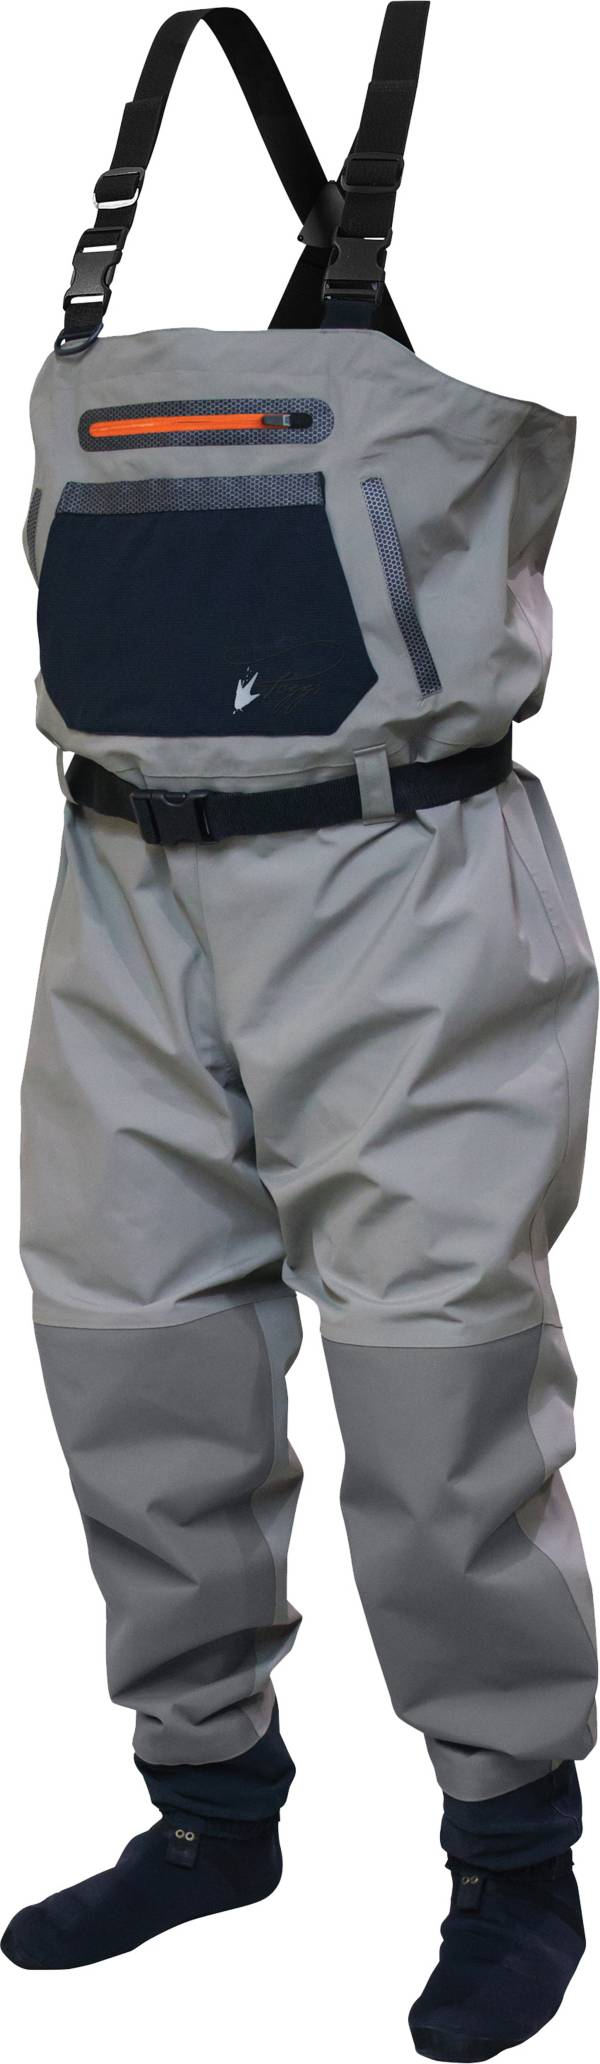 frogg toggs Sierran Breathable Chest Waders product image